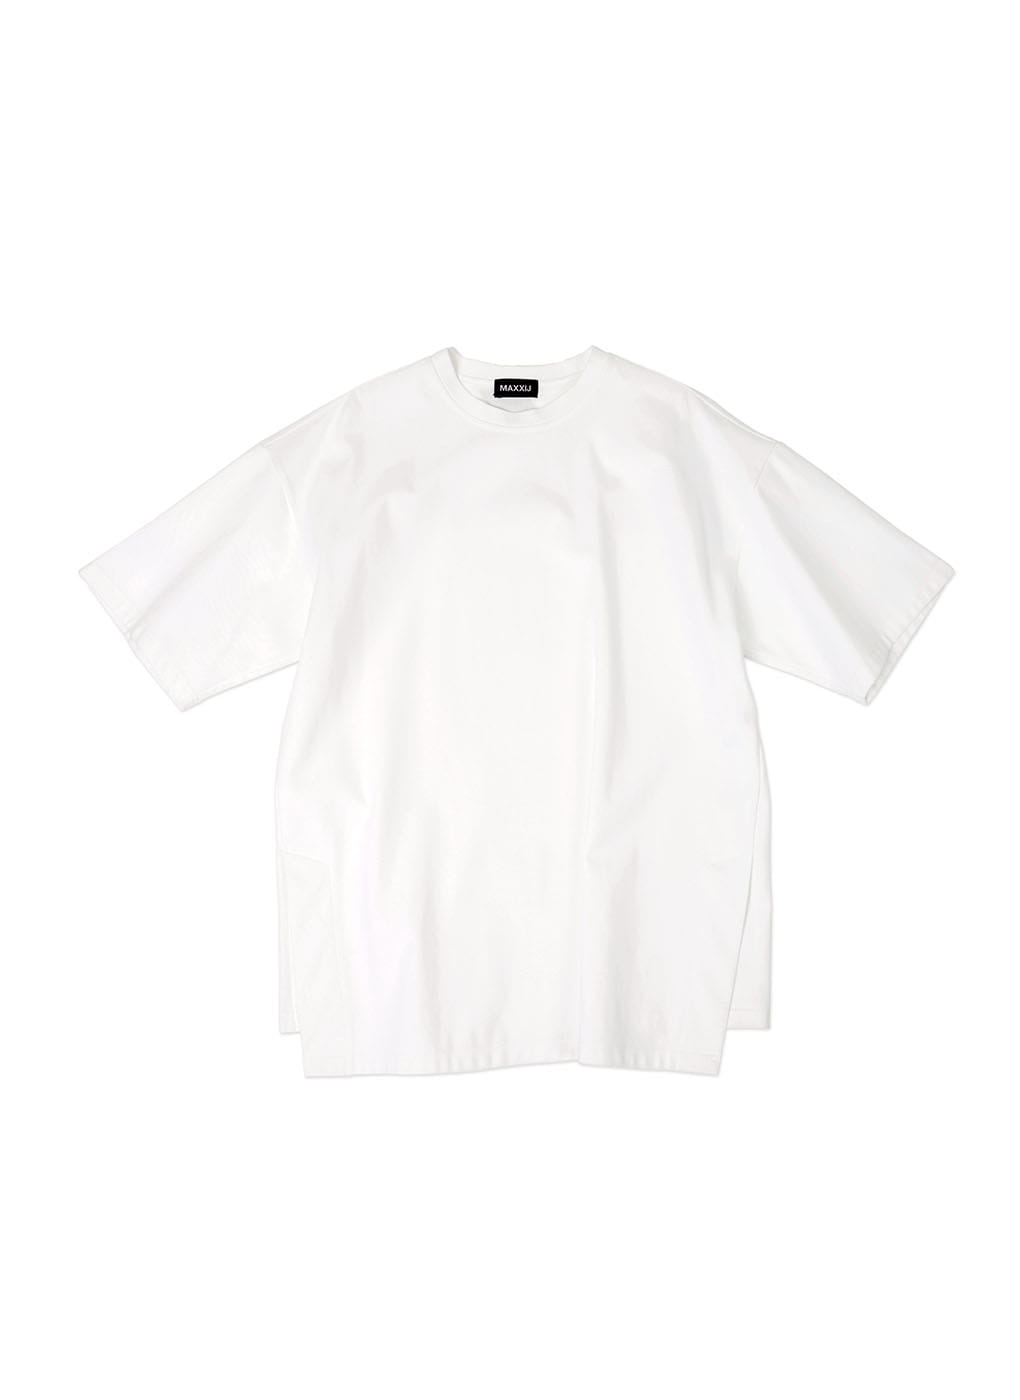 White Oversized Big Logo Printed T-shirt